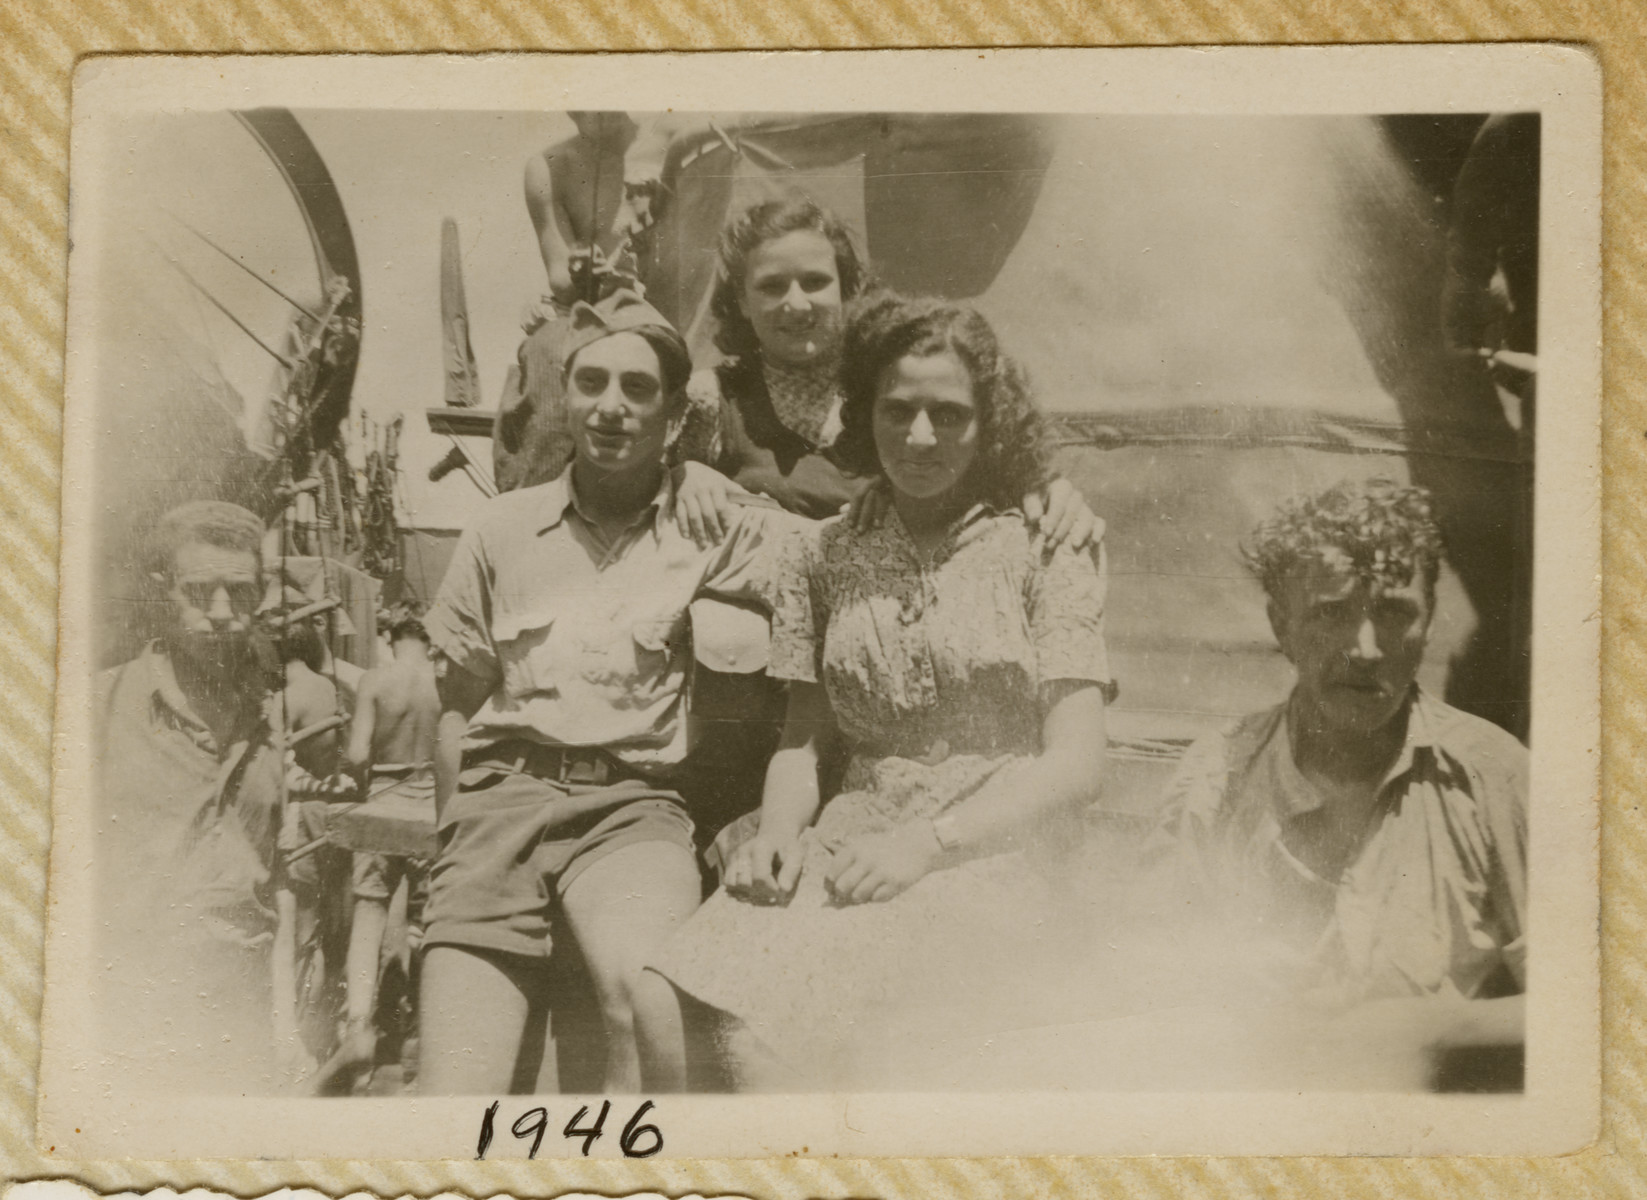 Jewish refugees pose on the deck of the Biriah while en route to Palestine.    Pictured in the center are Robert, Miriam Ofer and Alitza.